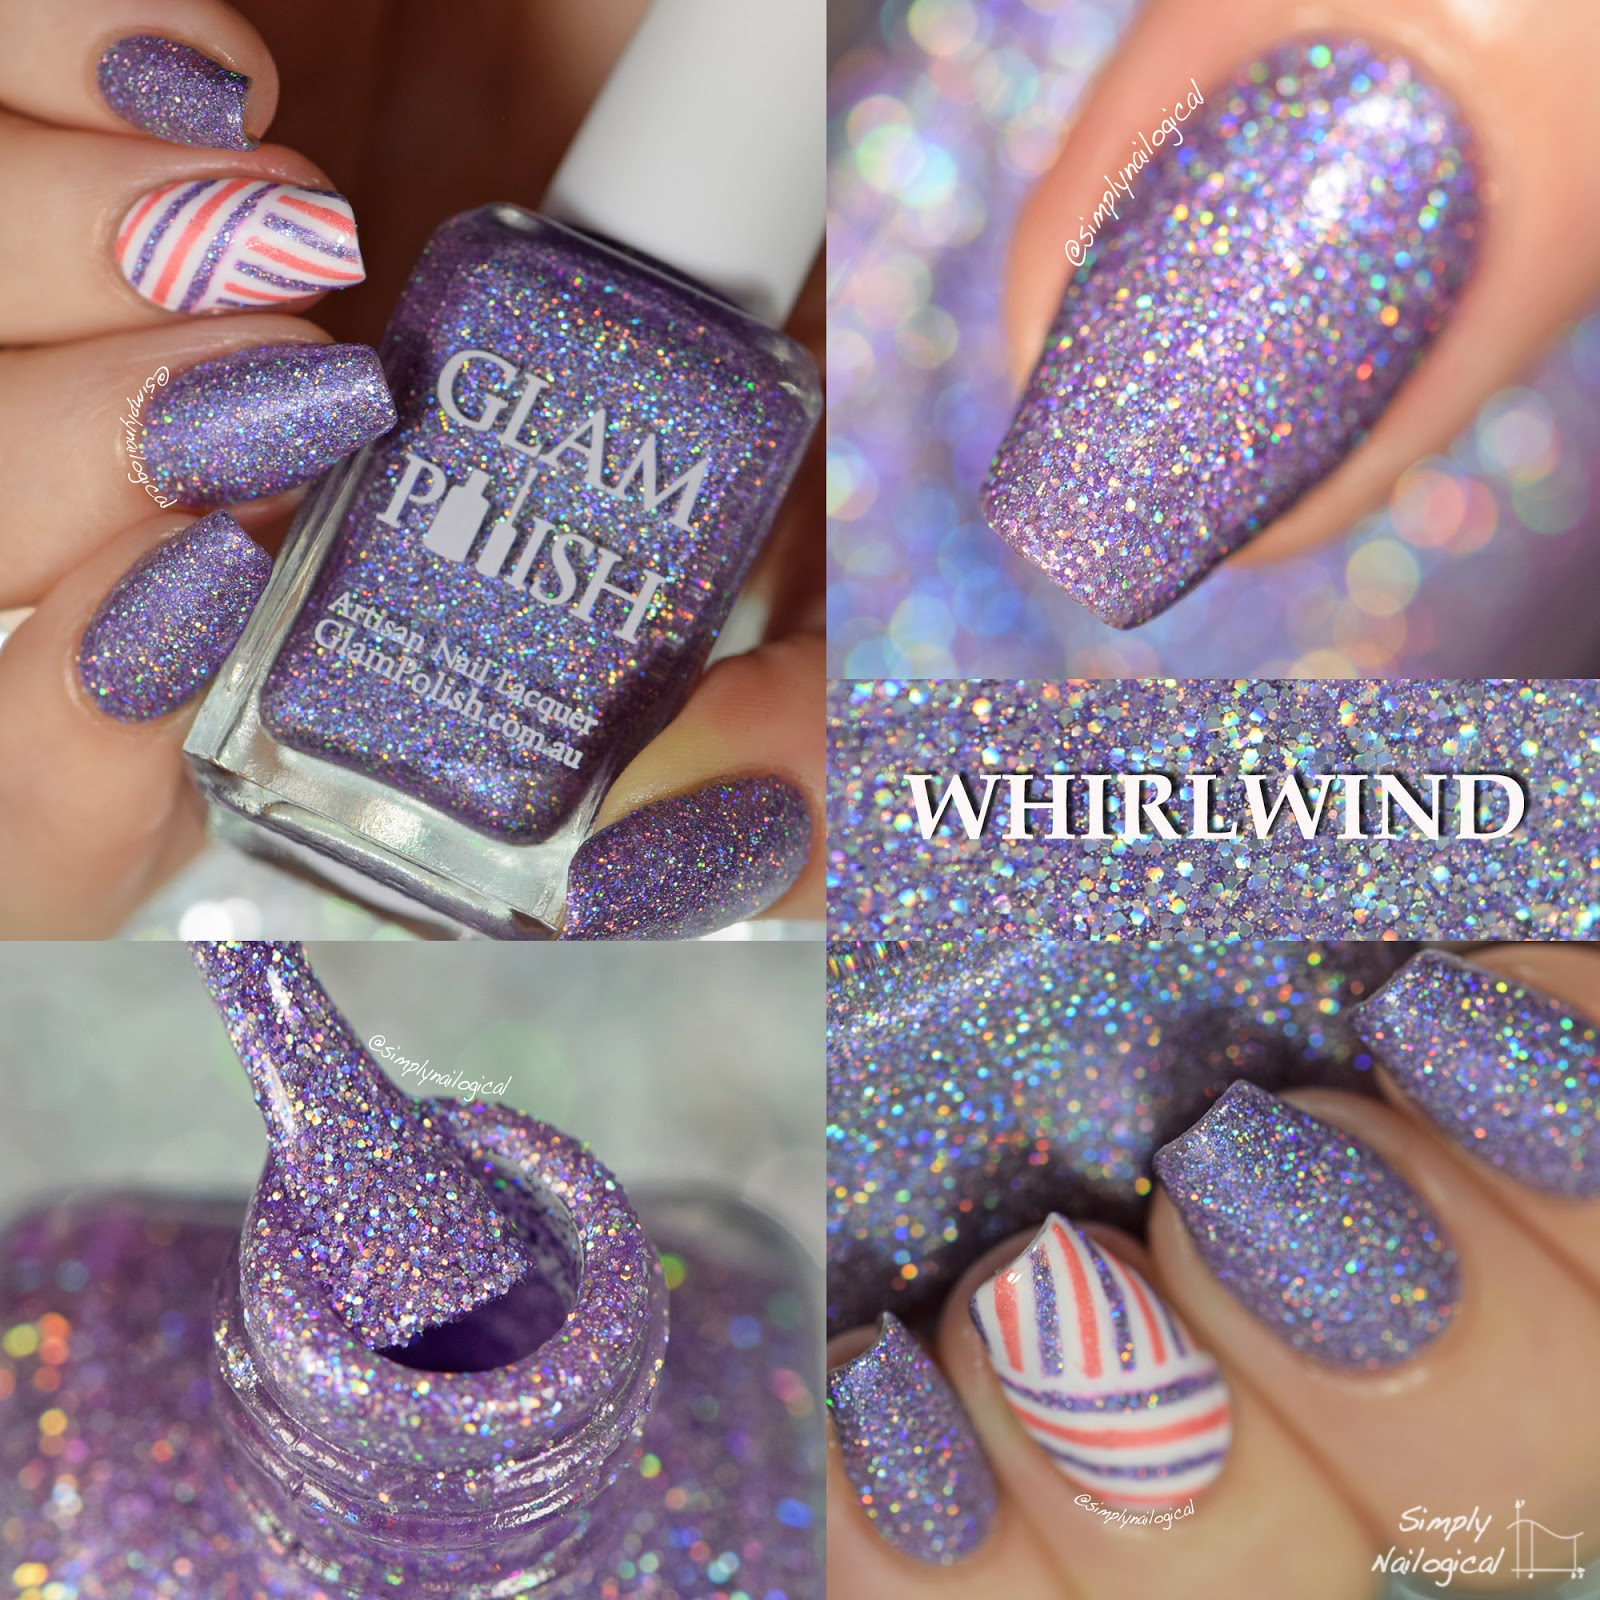 Glam Polish December 2014 Whirlwind swatch